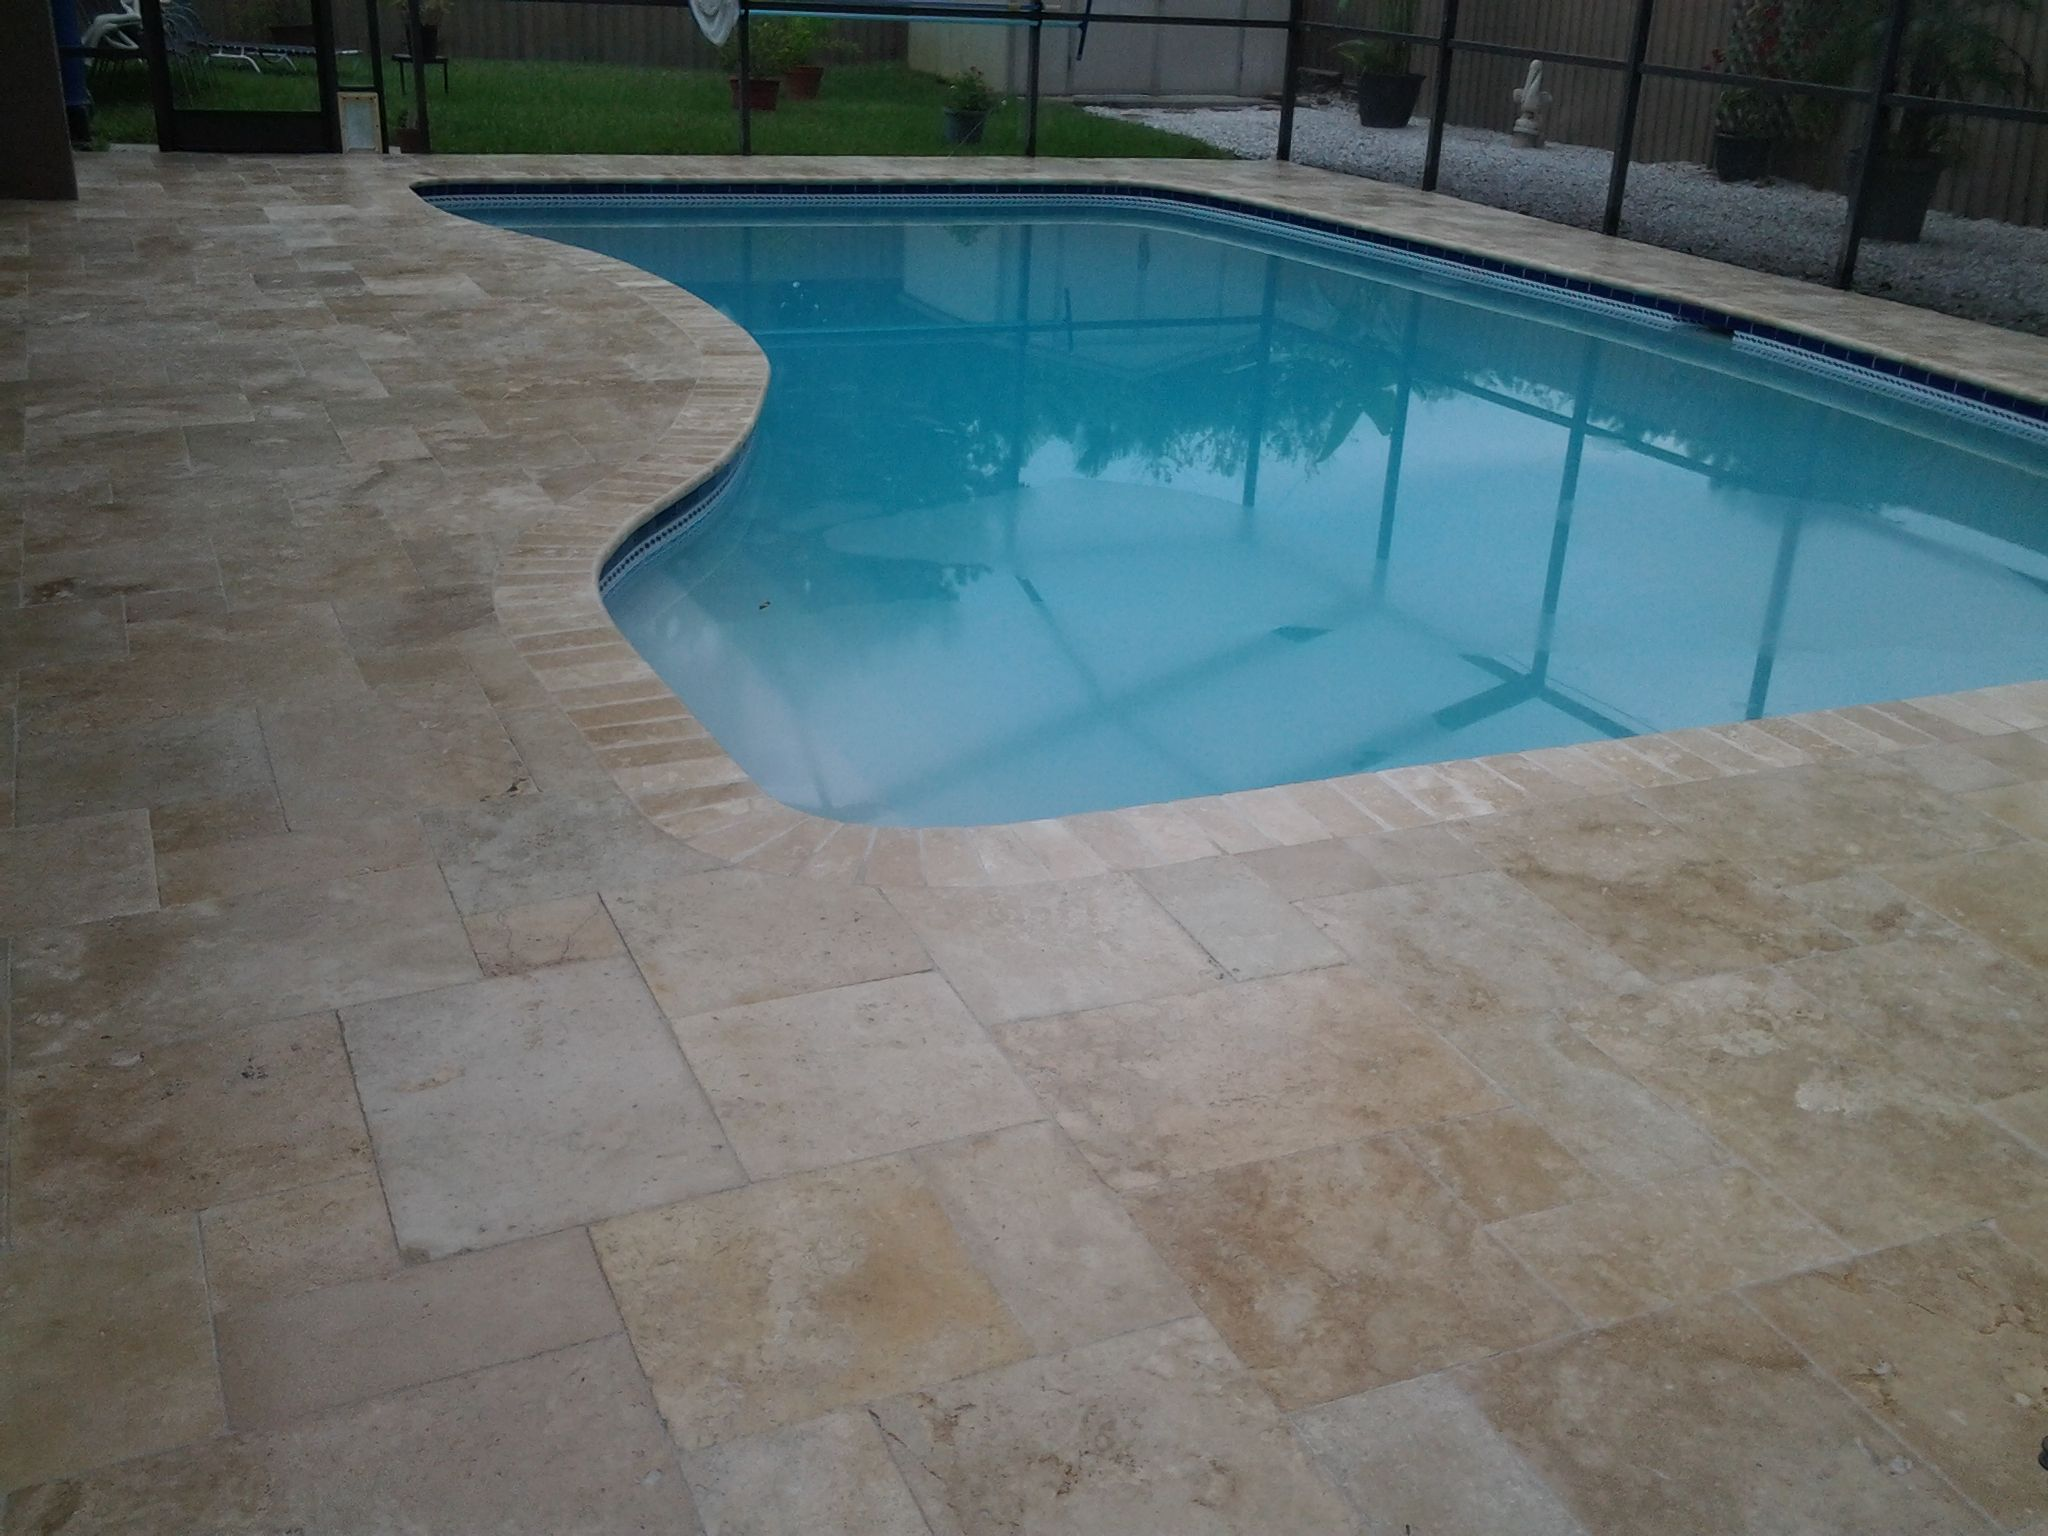 Travertine Pool Pavers Travertine Pavers Pool Deck Installation Travertine Paver